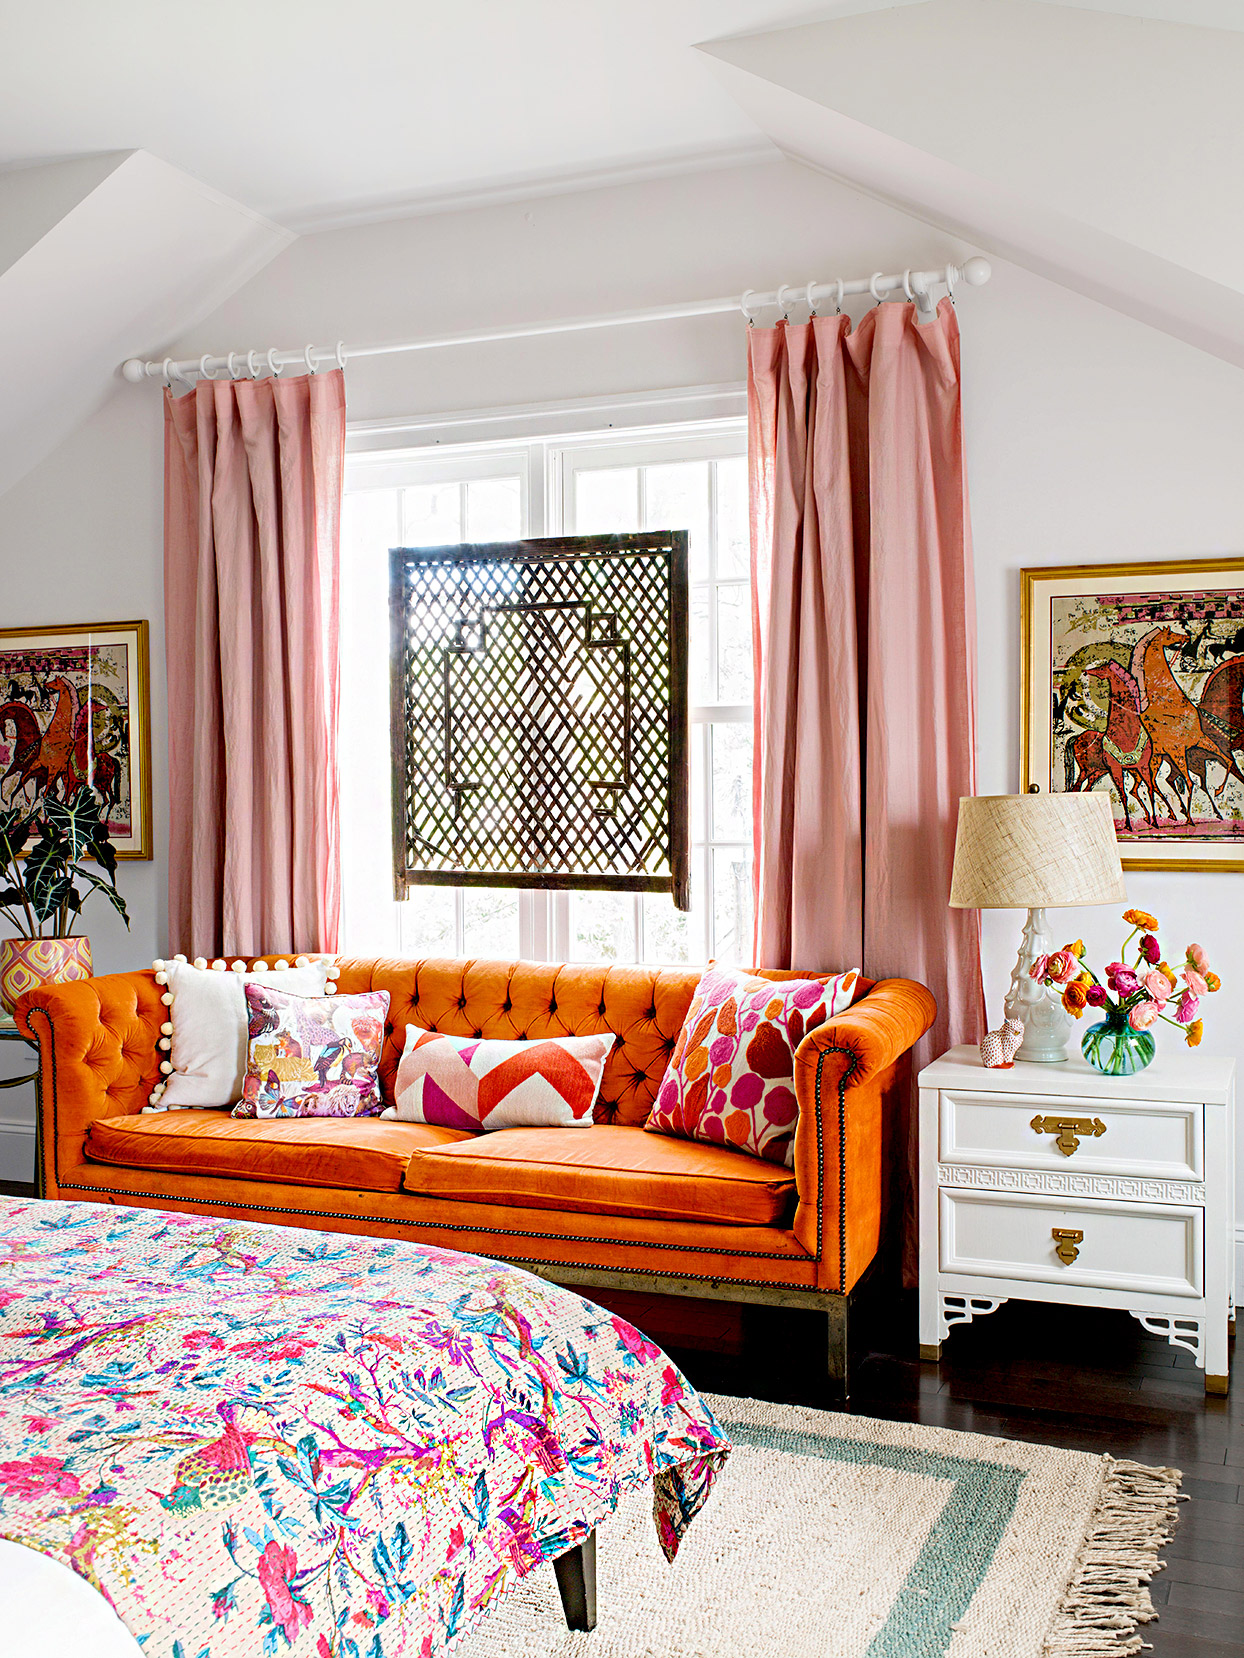 Bedroom with orange couch and colorful bedspread